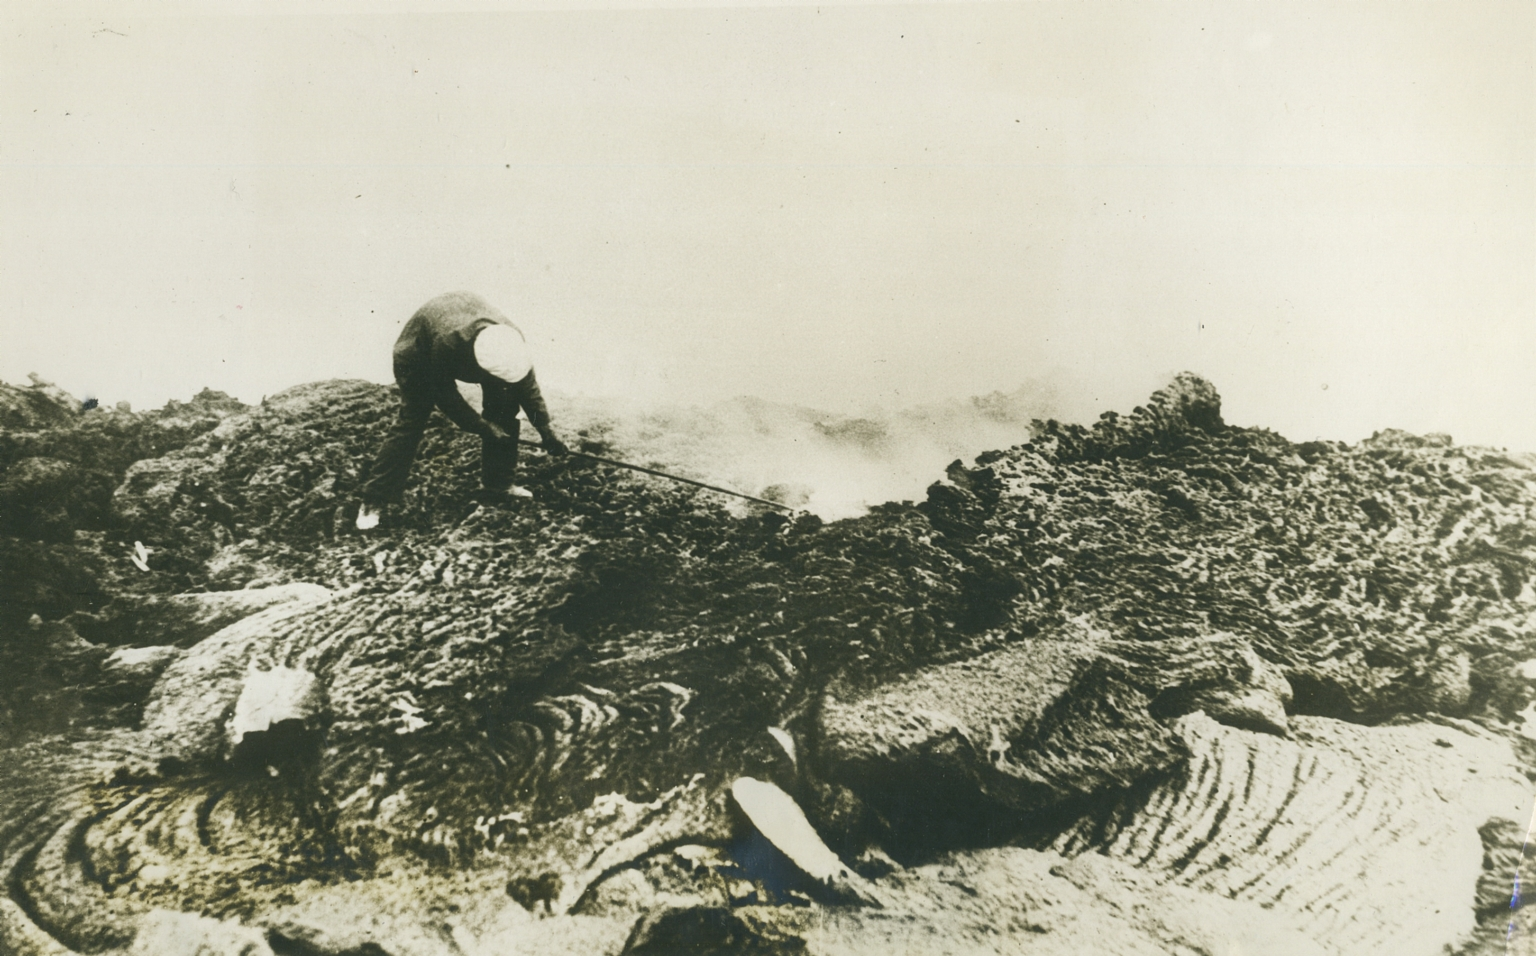 Vesuvius. 1st August 1930 press photo. New crater formed on Vesuvius. Photo courtesy of Rick Bauer. On the rear of the photo it says: 'New crater formed on Vesuvius. An observer from the Mt. Vesuvius observatory examining the lava of the new crater recently formed by violent eruptions of Mount Vesuvius which were followed by earthquakes which took a toll of more than 15,000 lives'